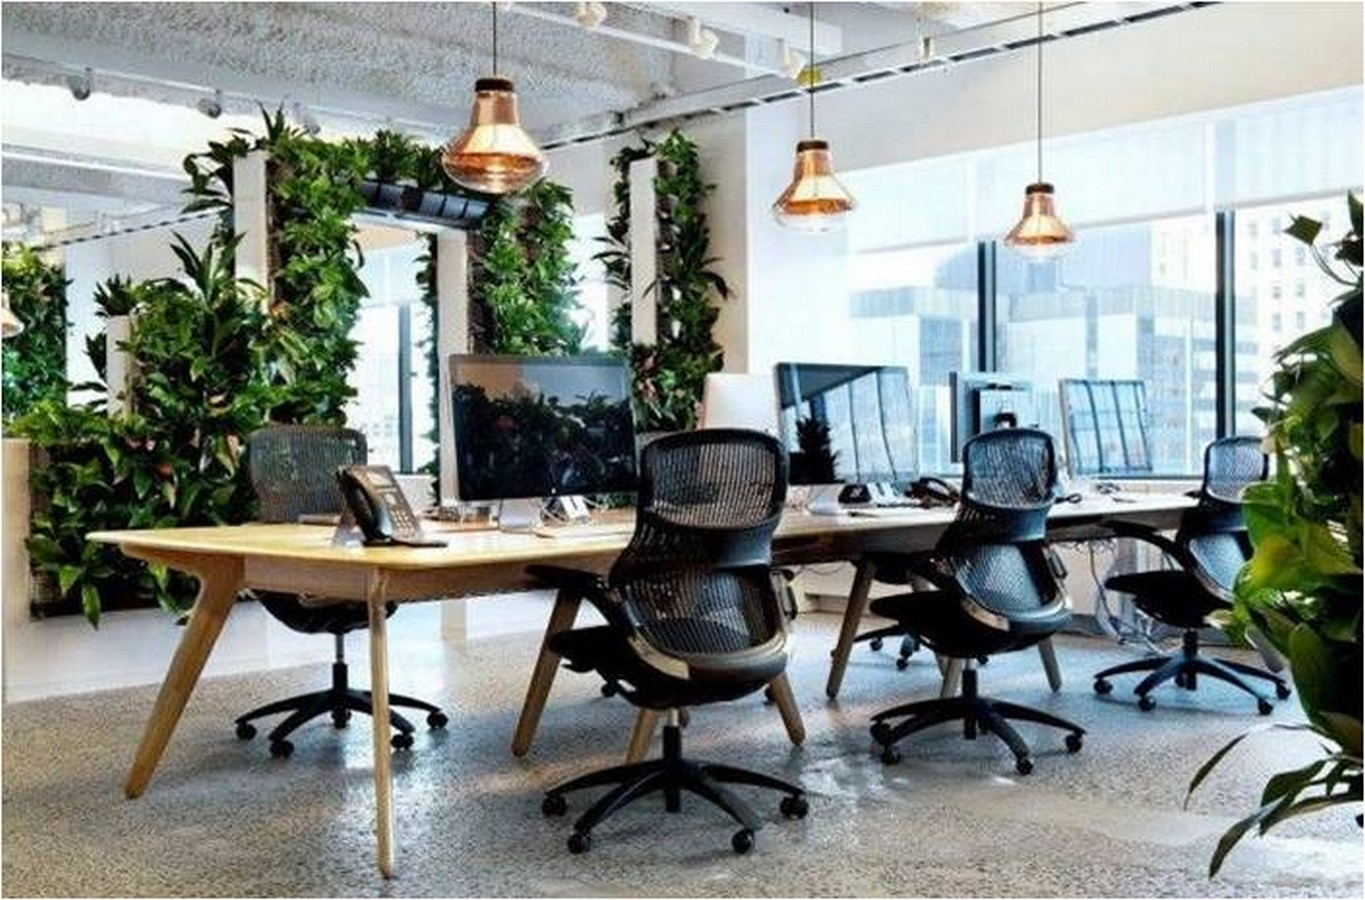 6 Things you did not know about Biophilic Design - Sheet7